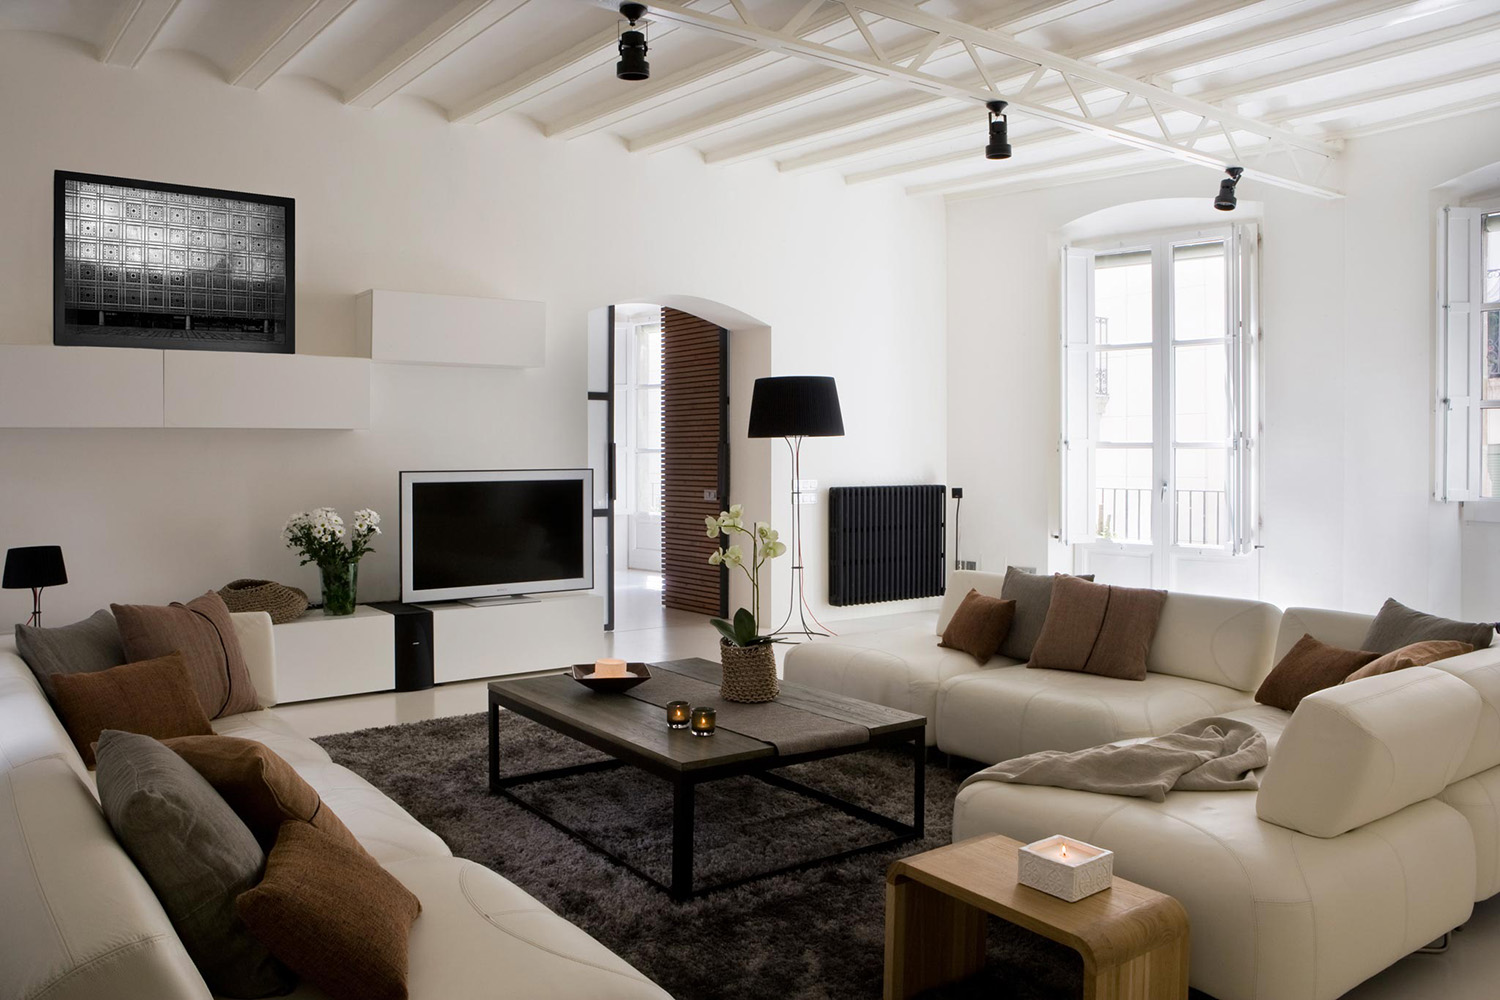 The light-colored living area and the completely white ceiling